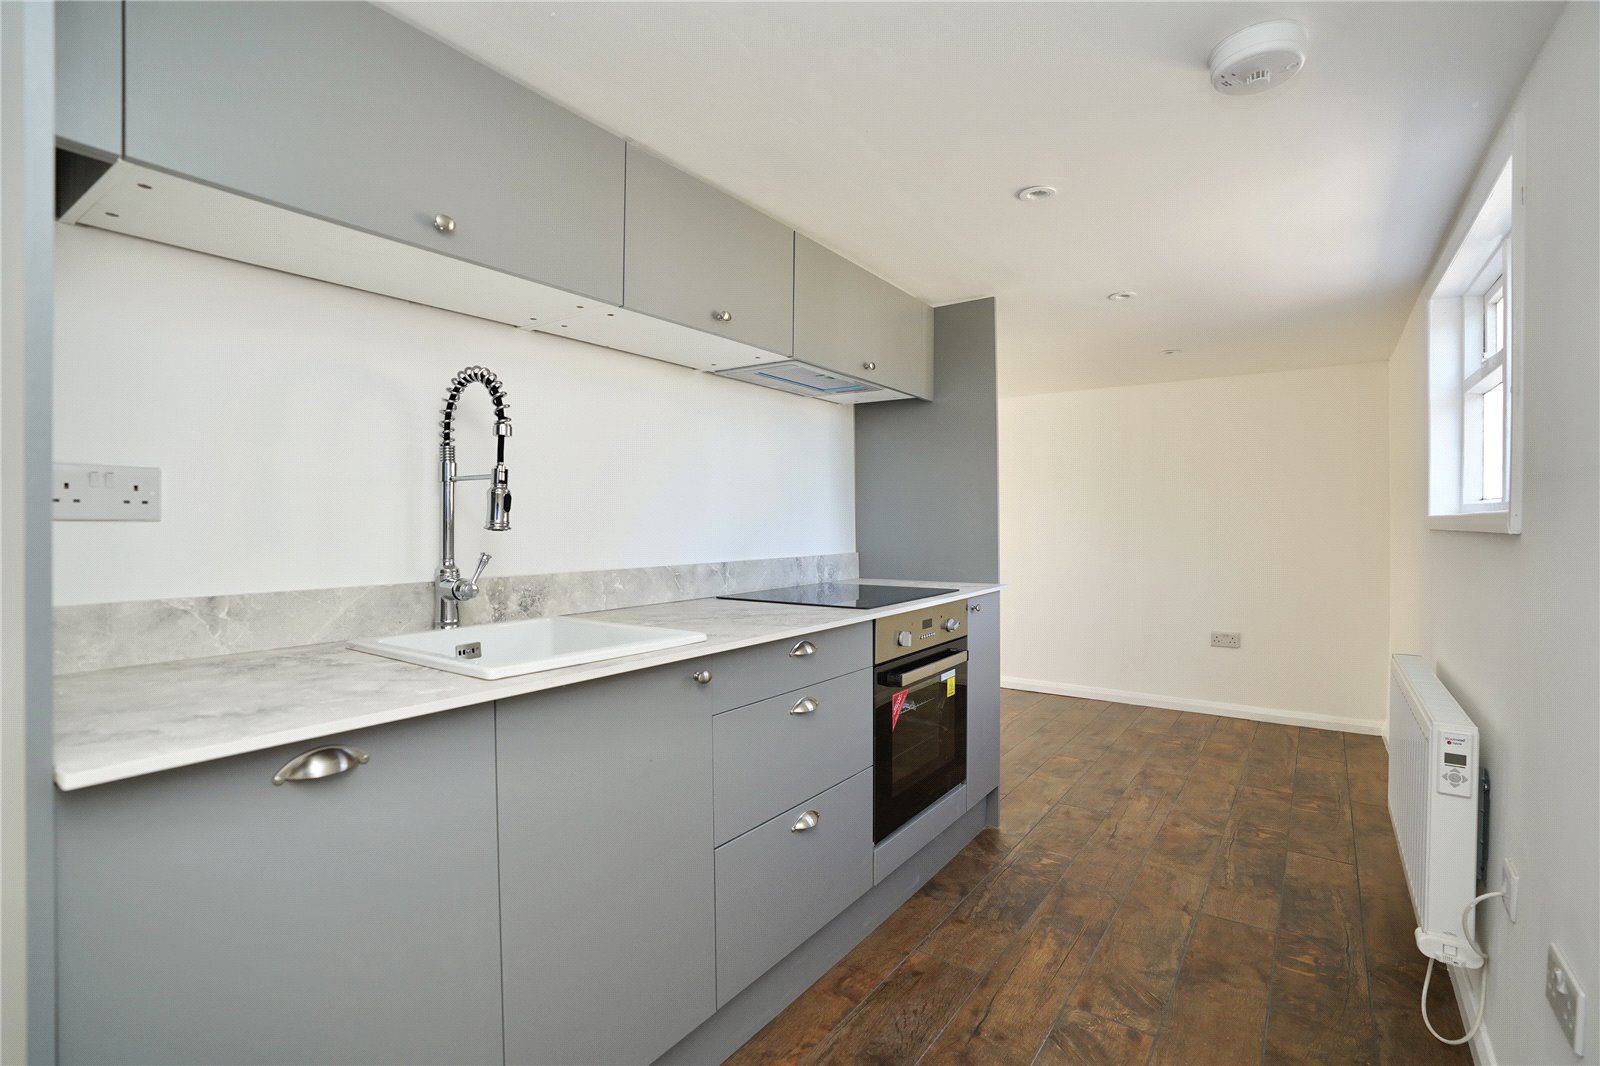 2 bed house for sale in Toseland, PE19 6RX 0